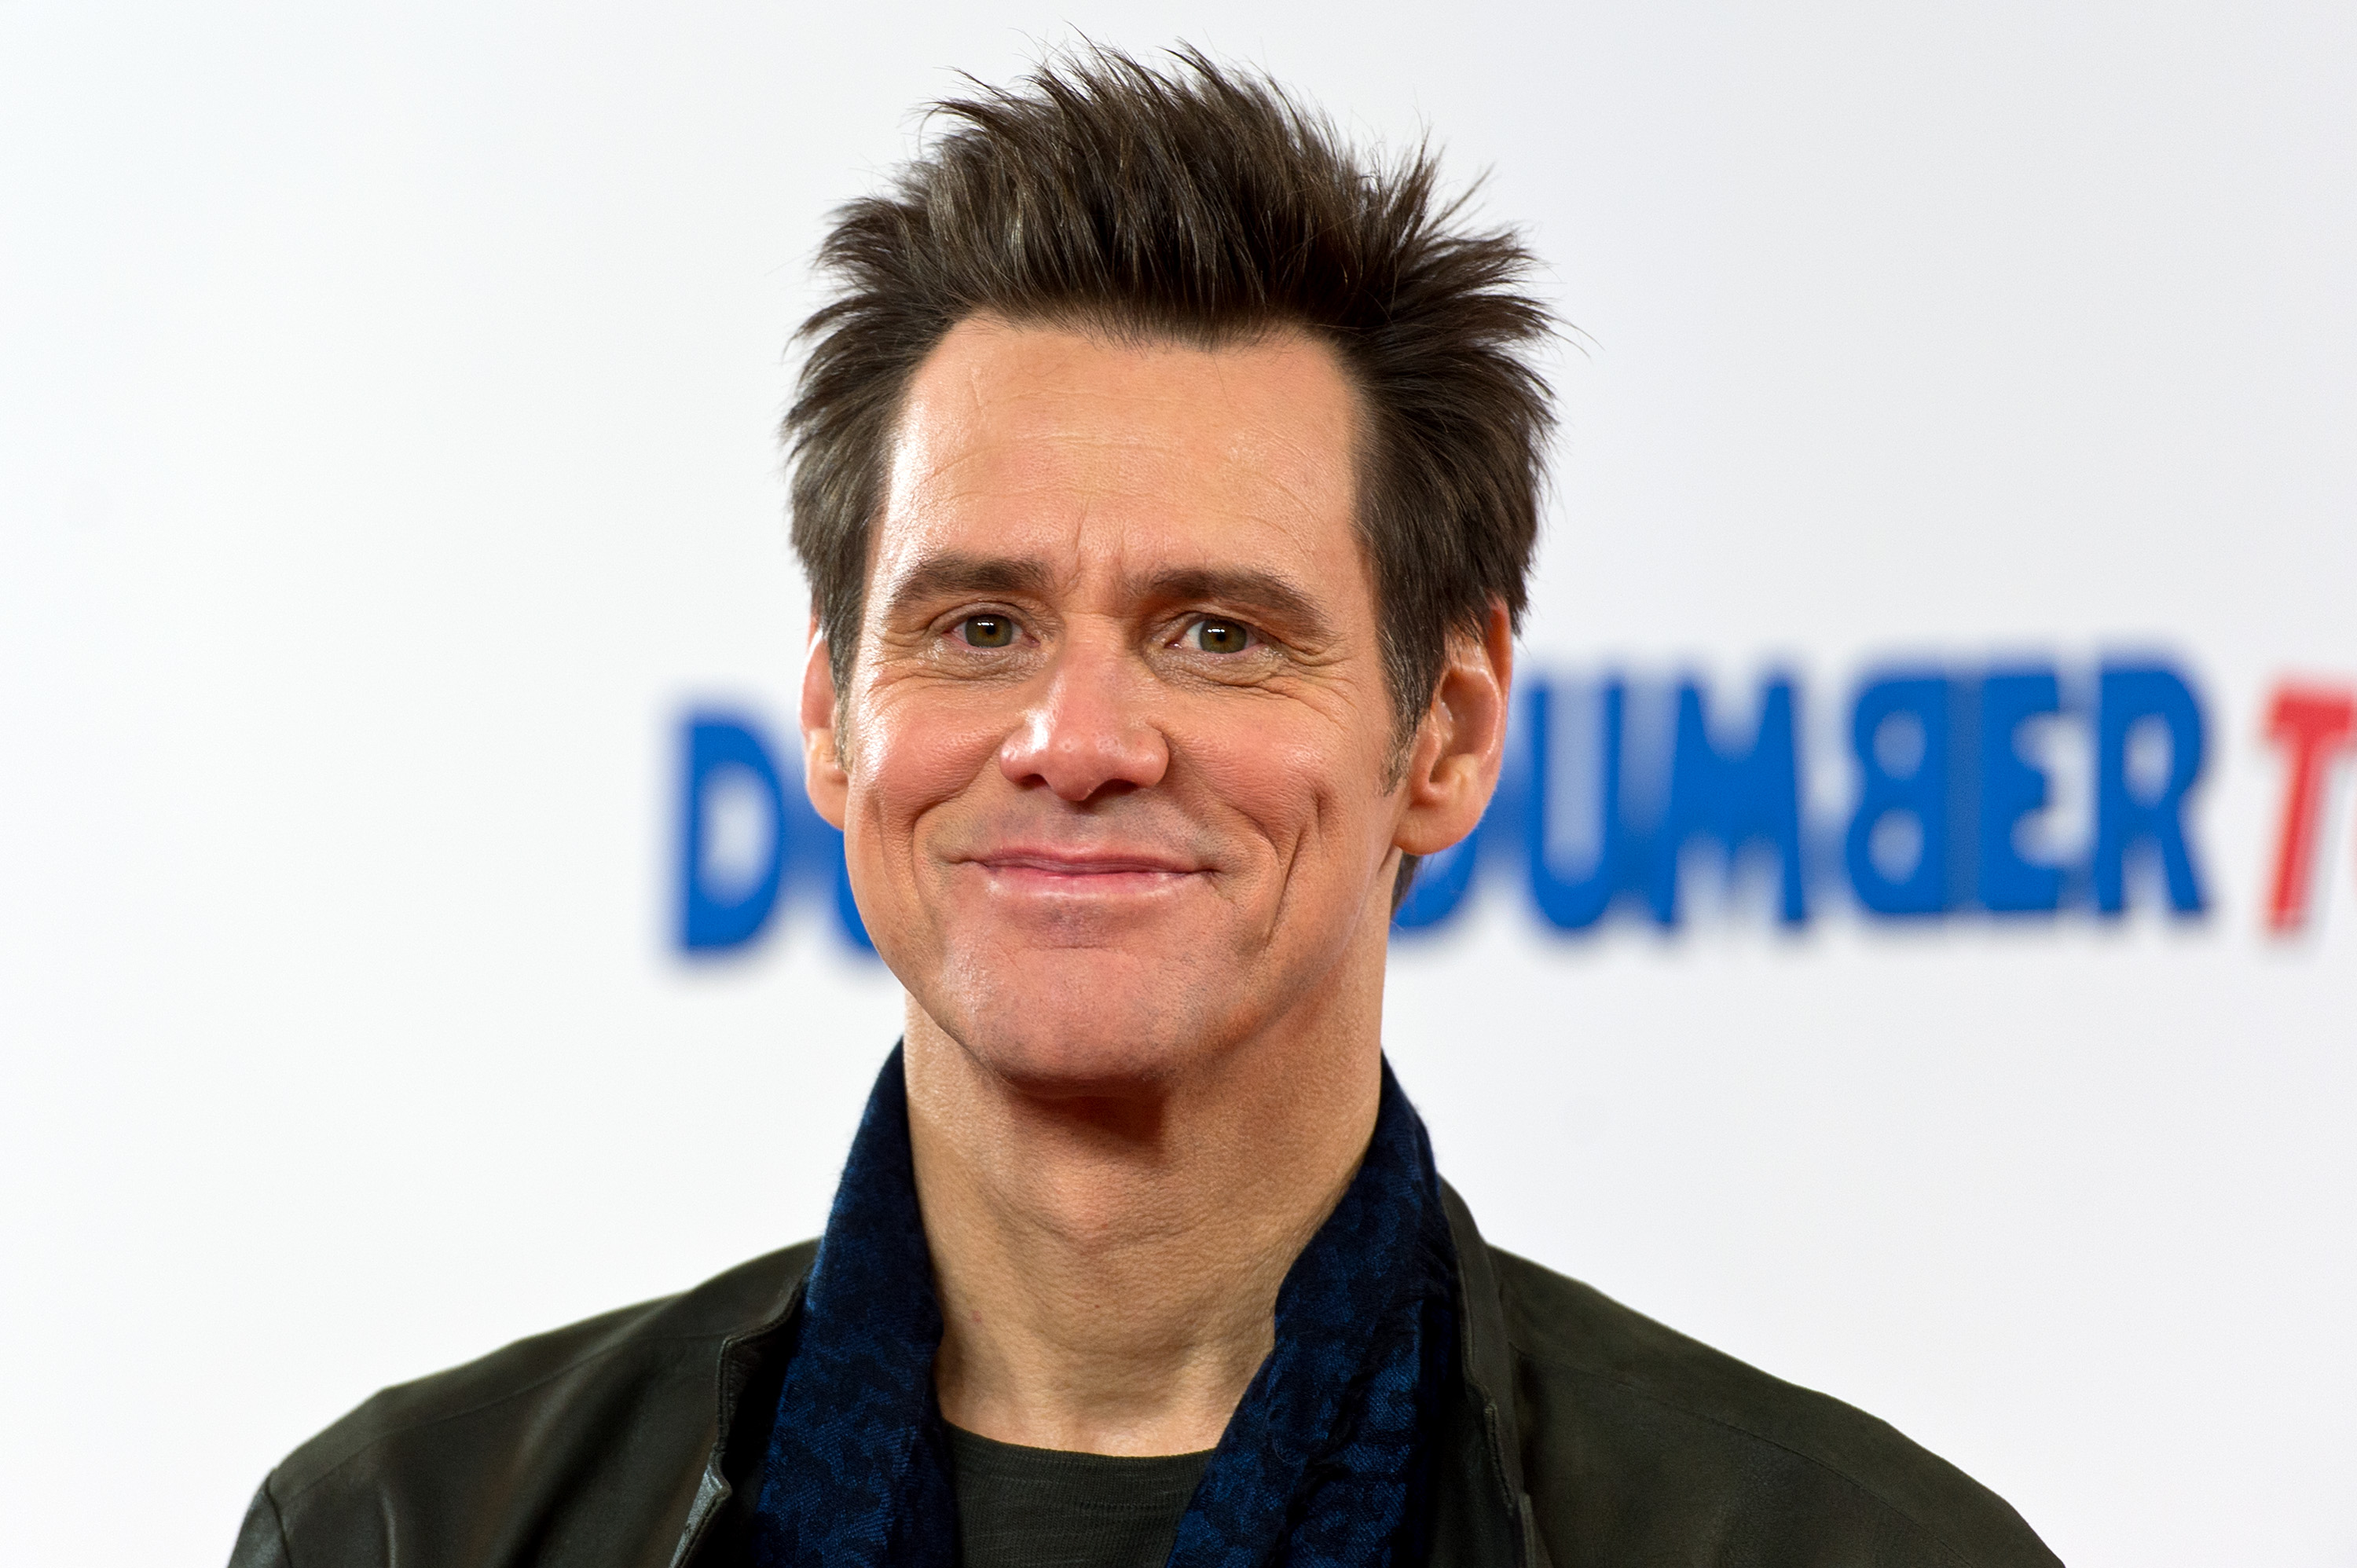 Jim Carrey attends a photocall for 'Dumb and Dumber To' on November 20, 2014 in London